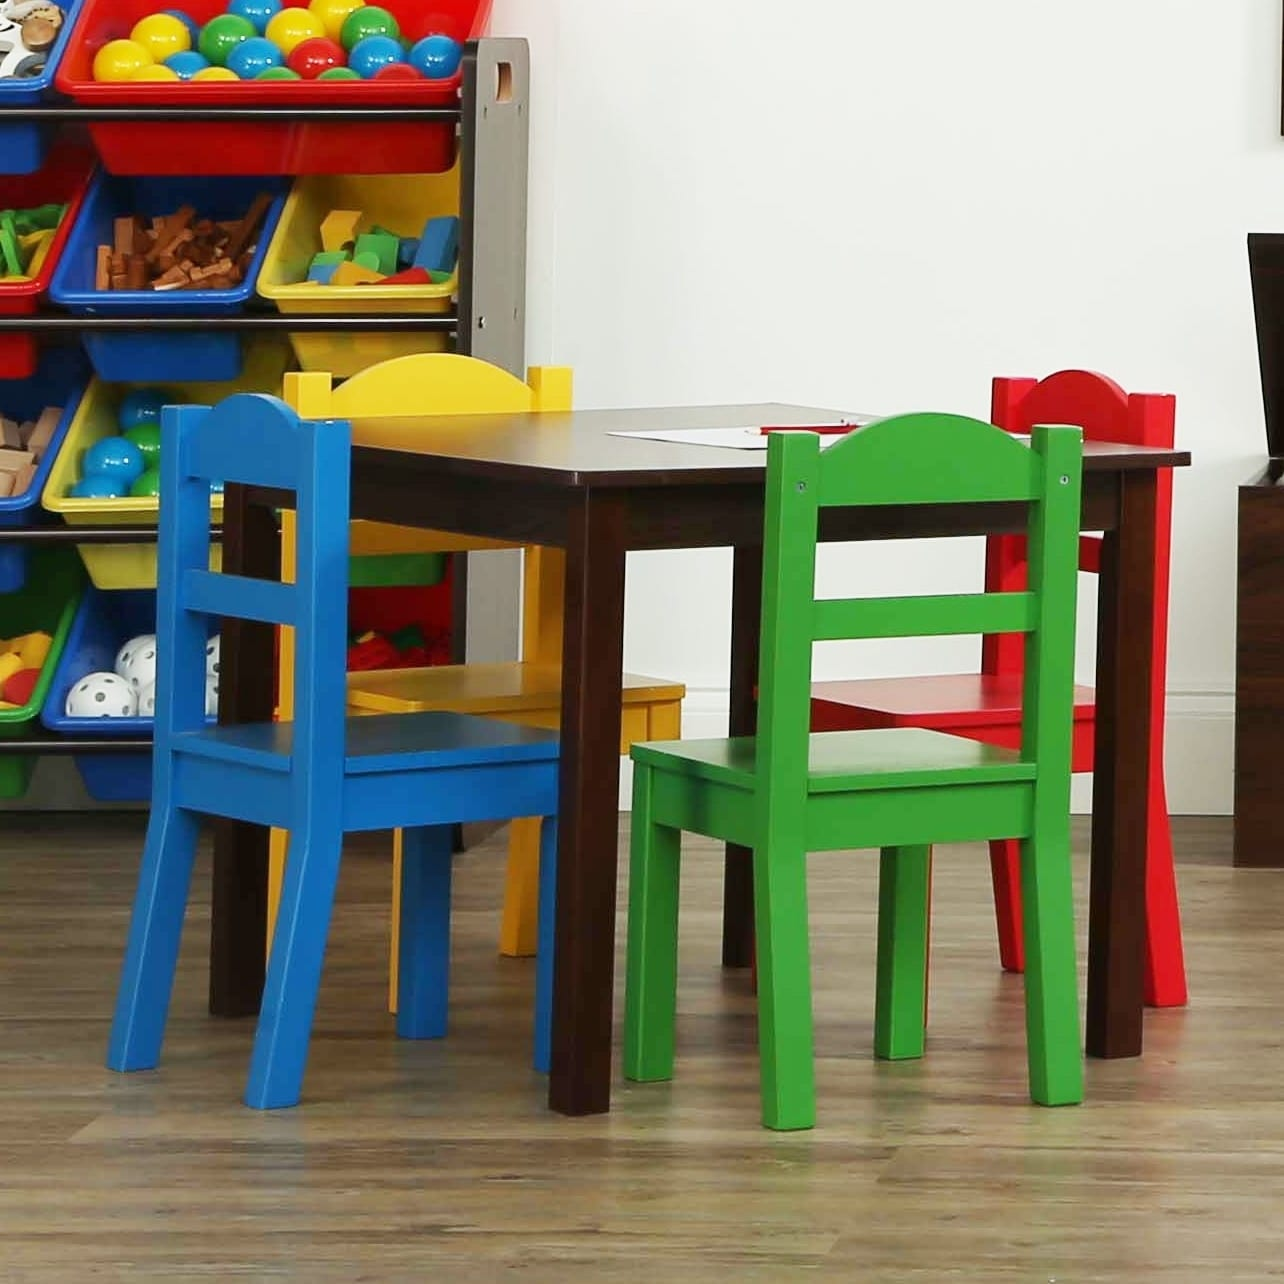 3e0de320166d1 Shop Discover 5-Piece Wood Kids Table   Chairs Set in Dark Walnut Primary - Free  Shipping Today - Overstock - 21801806